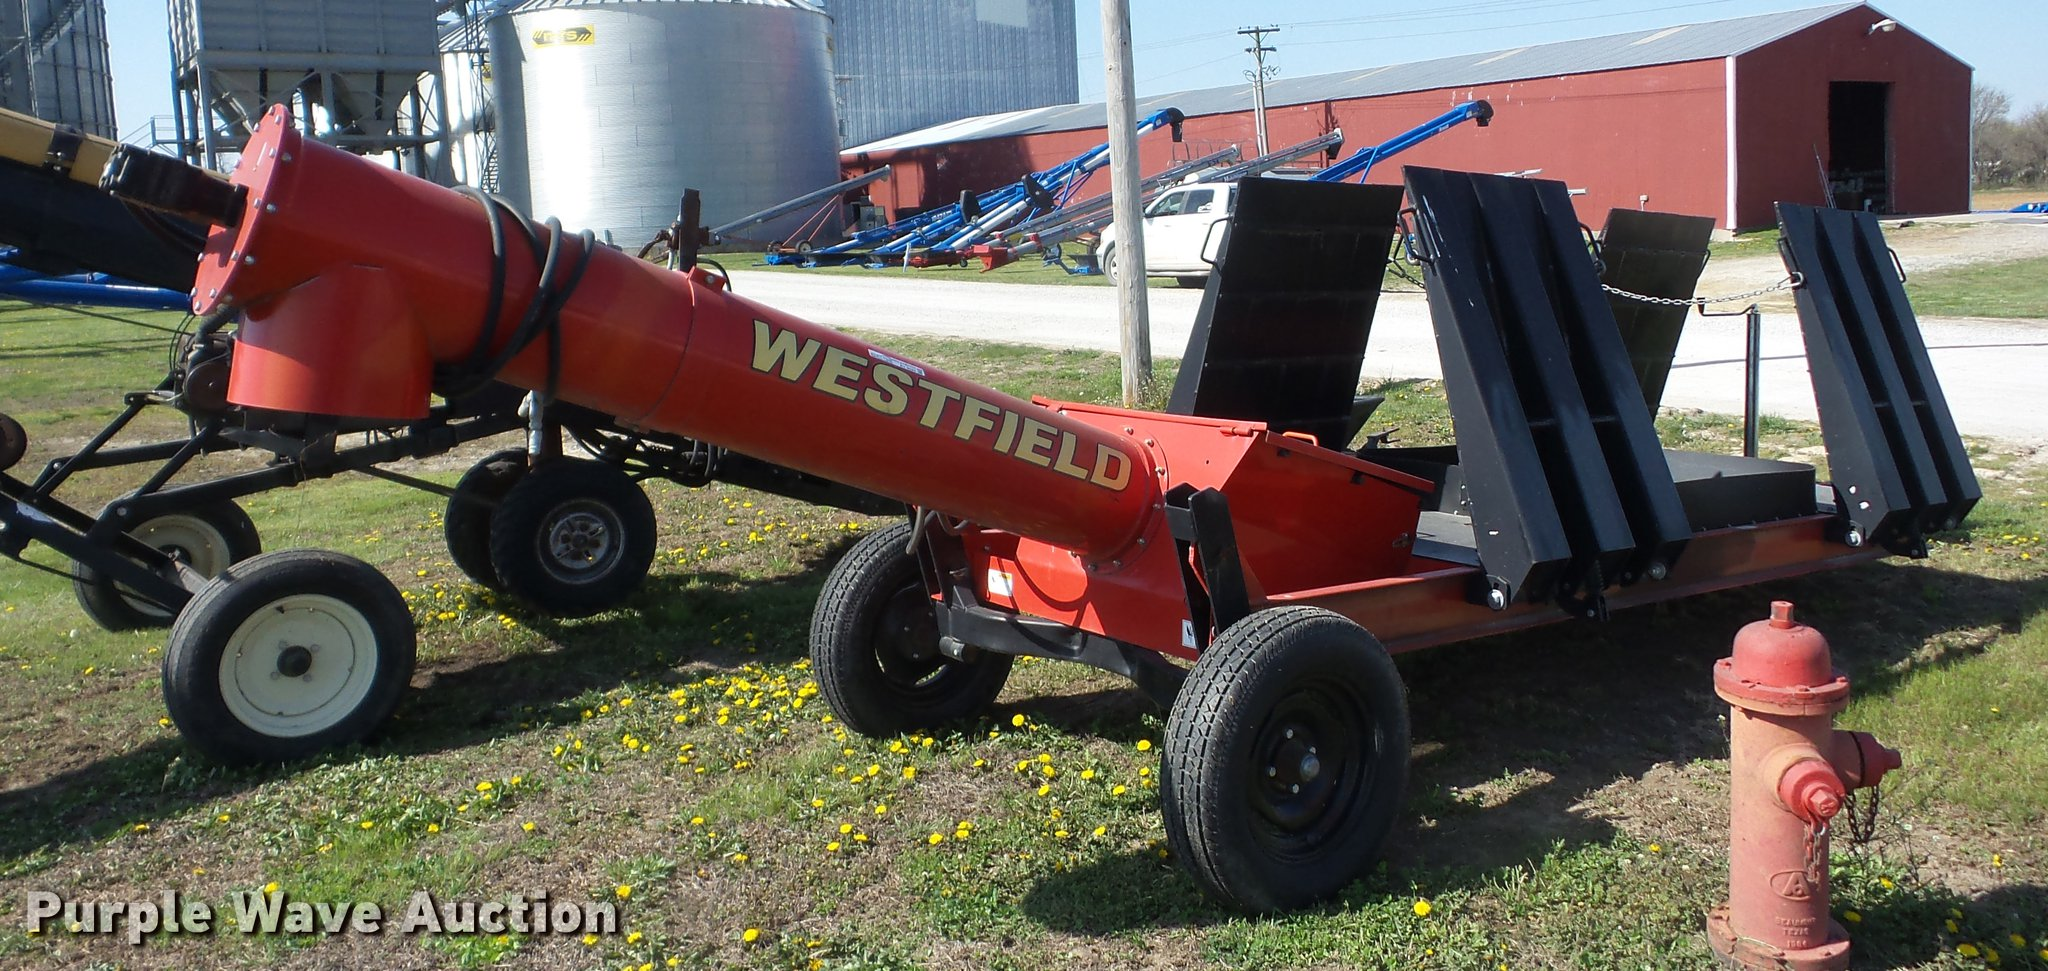 Westfield drive over grain pit | Item AY9523 | SOLD! May 9 A